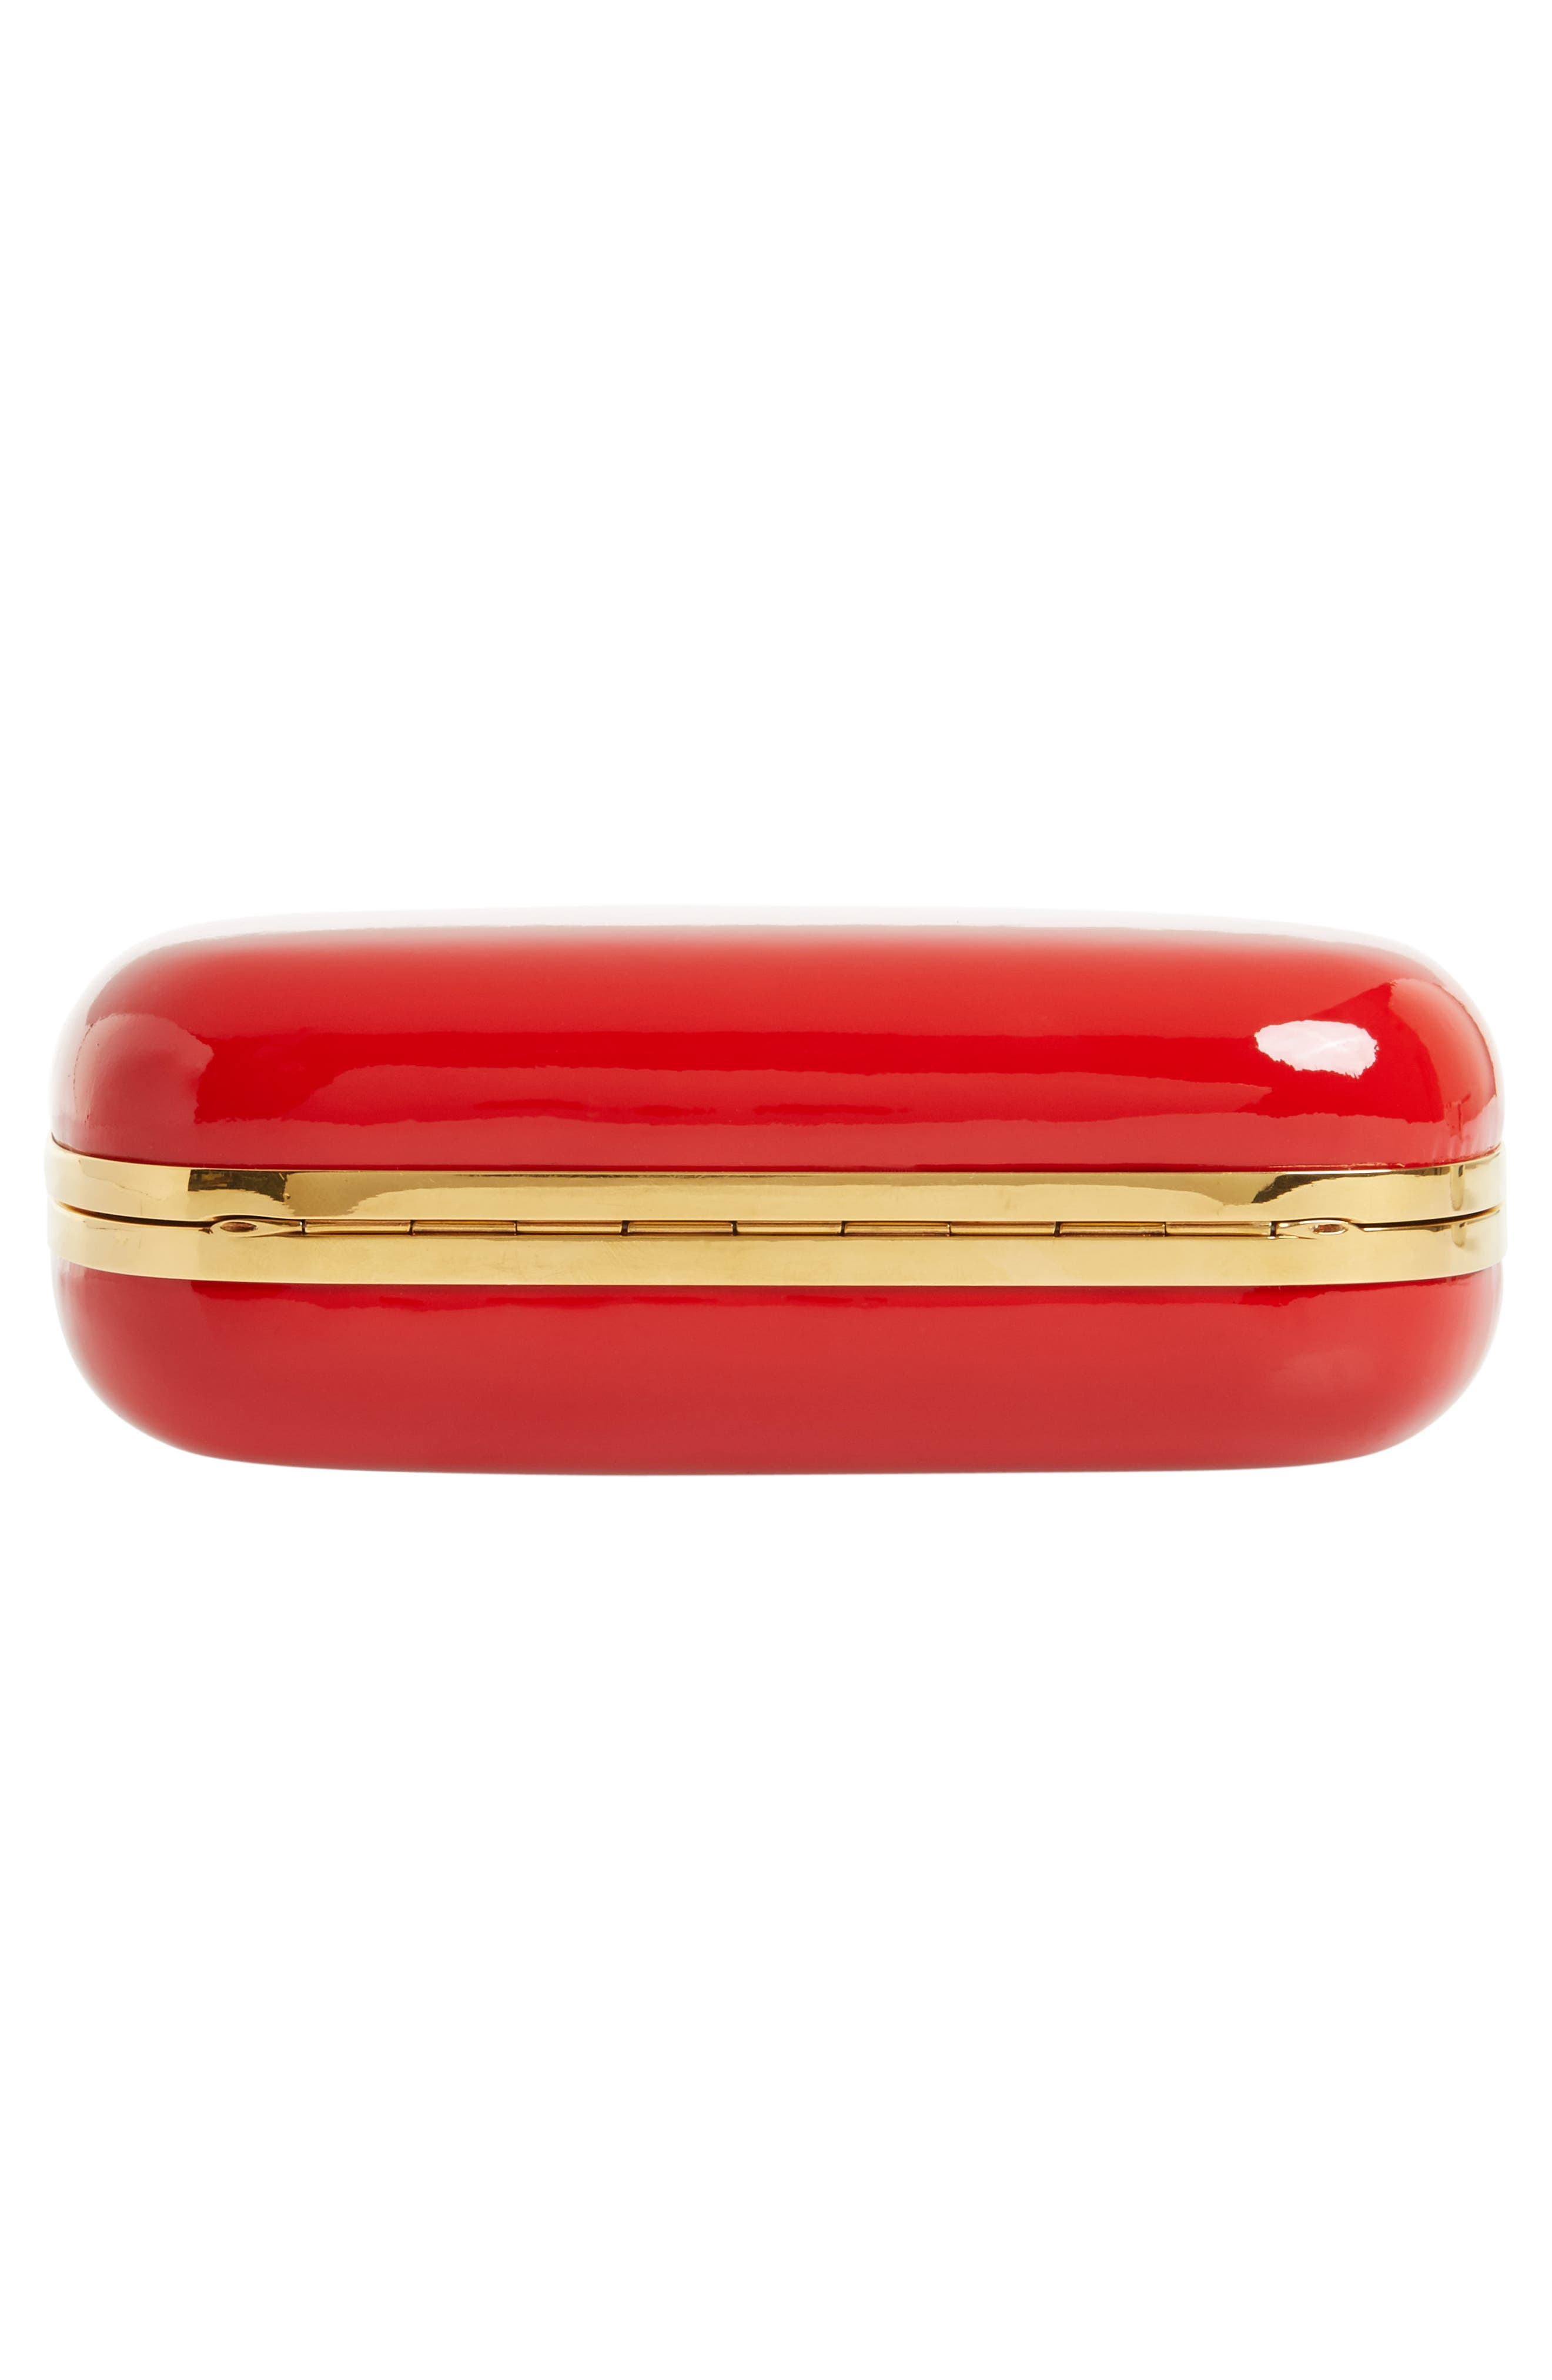 Knuckle Clasp Patent Leather Box Clutch,                             Alternate thumbnail 6, color,                             Lust Red